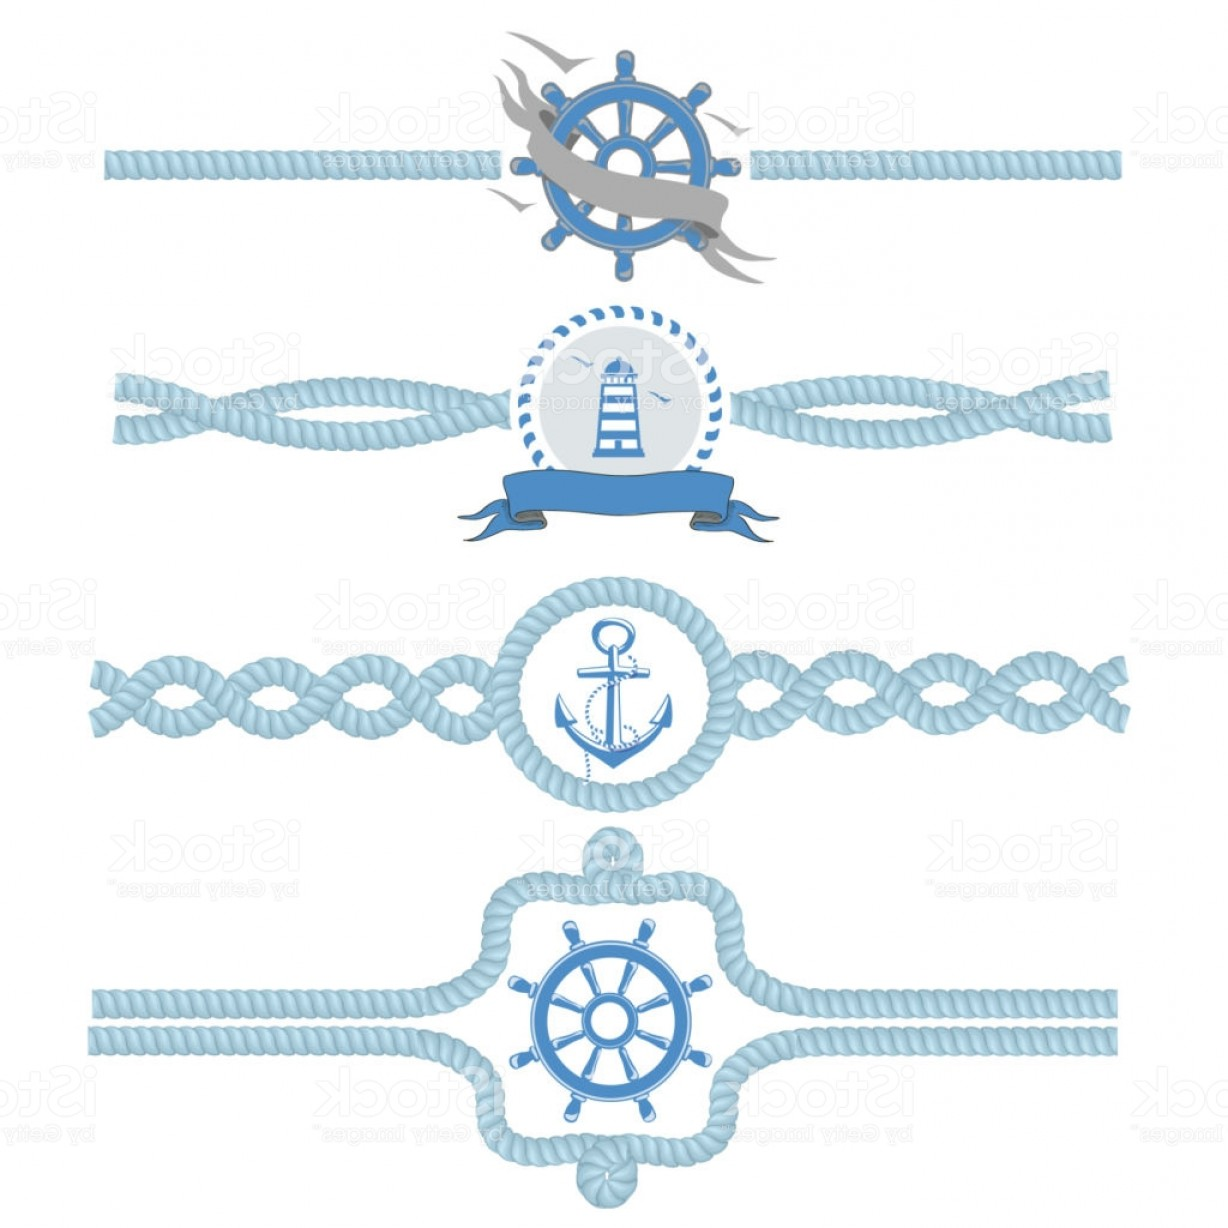 Nautical Text Divider Vector: Nautical Rope Vector Borders Dividers Vintage Design Frame Illustration Gm